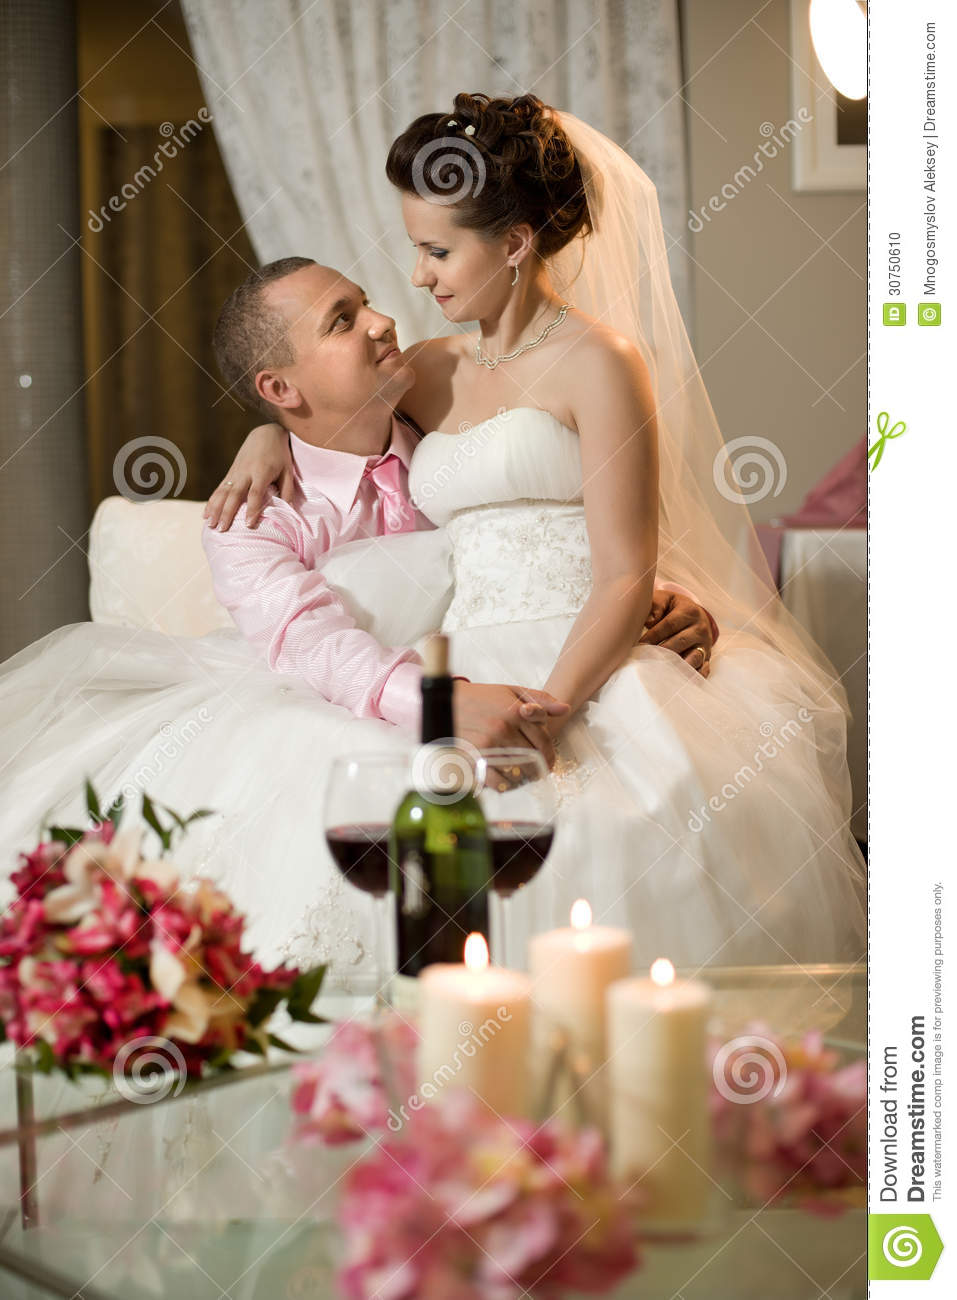 Newly married couple in hotel room romance wedding dinner